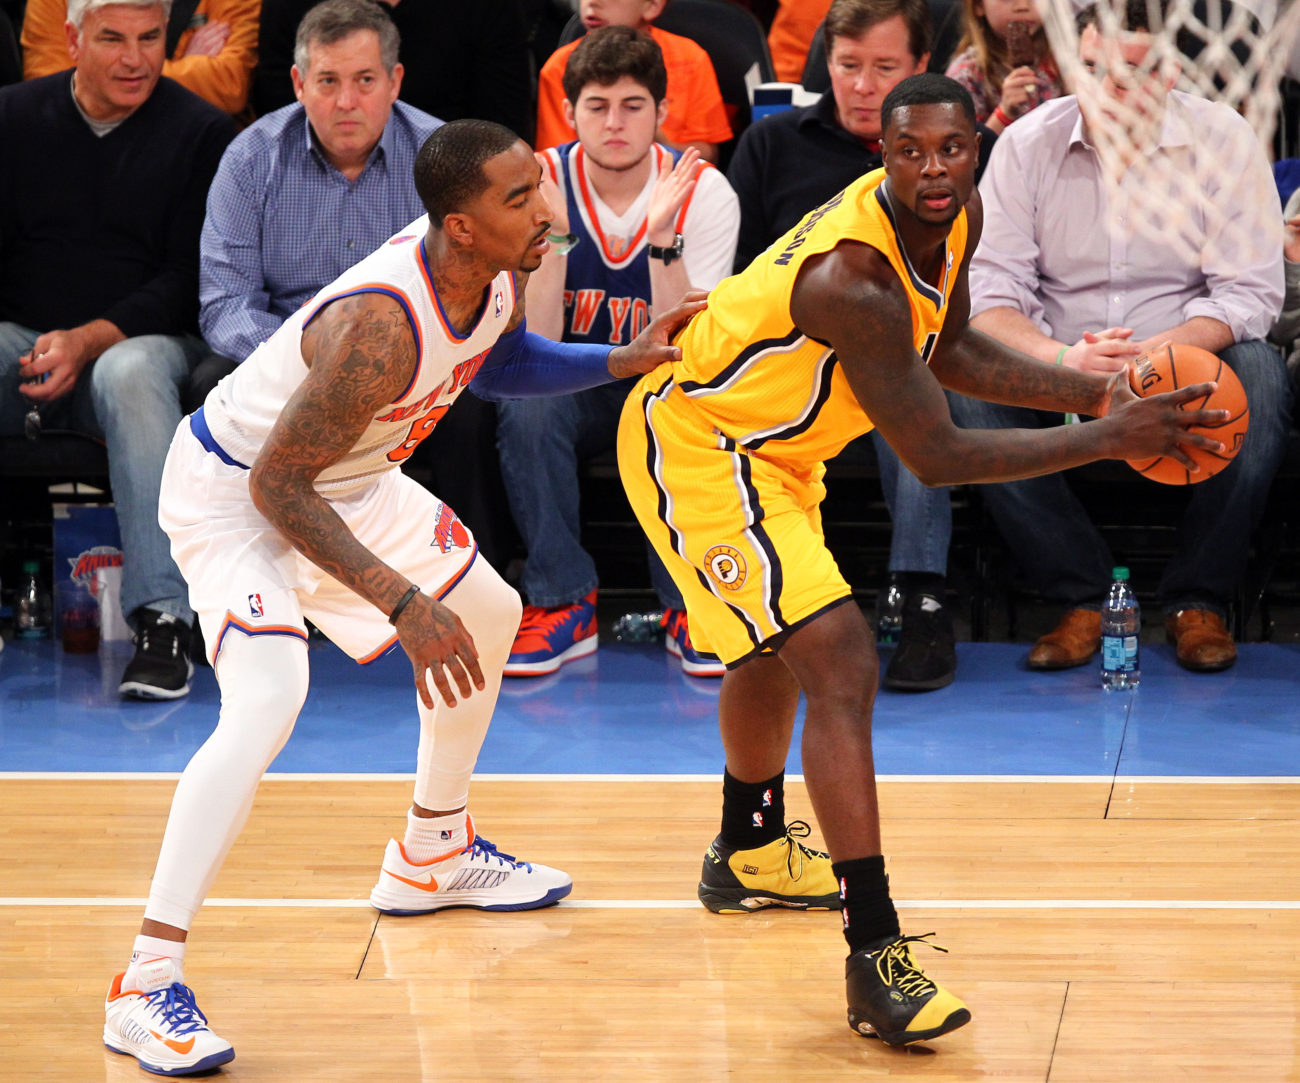 May 5, 2013; New York, NY, USA; New York Knicks guard J.R. Smith (8) guards Indiana Pacers guard Lance Stephenson (1) at Madison Square Garden. Mandatory Credit: Danny Wild-USA TODAY Sports